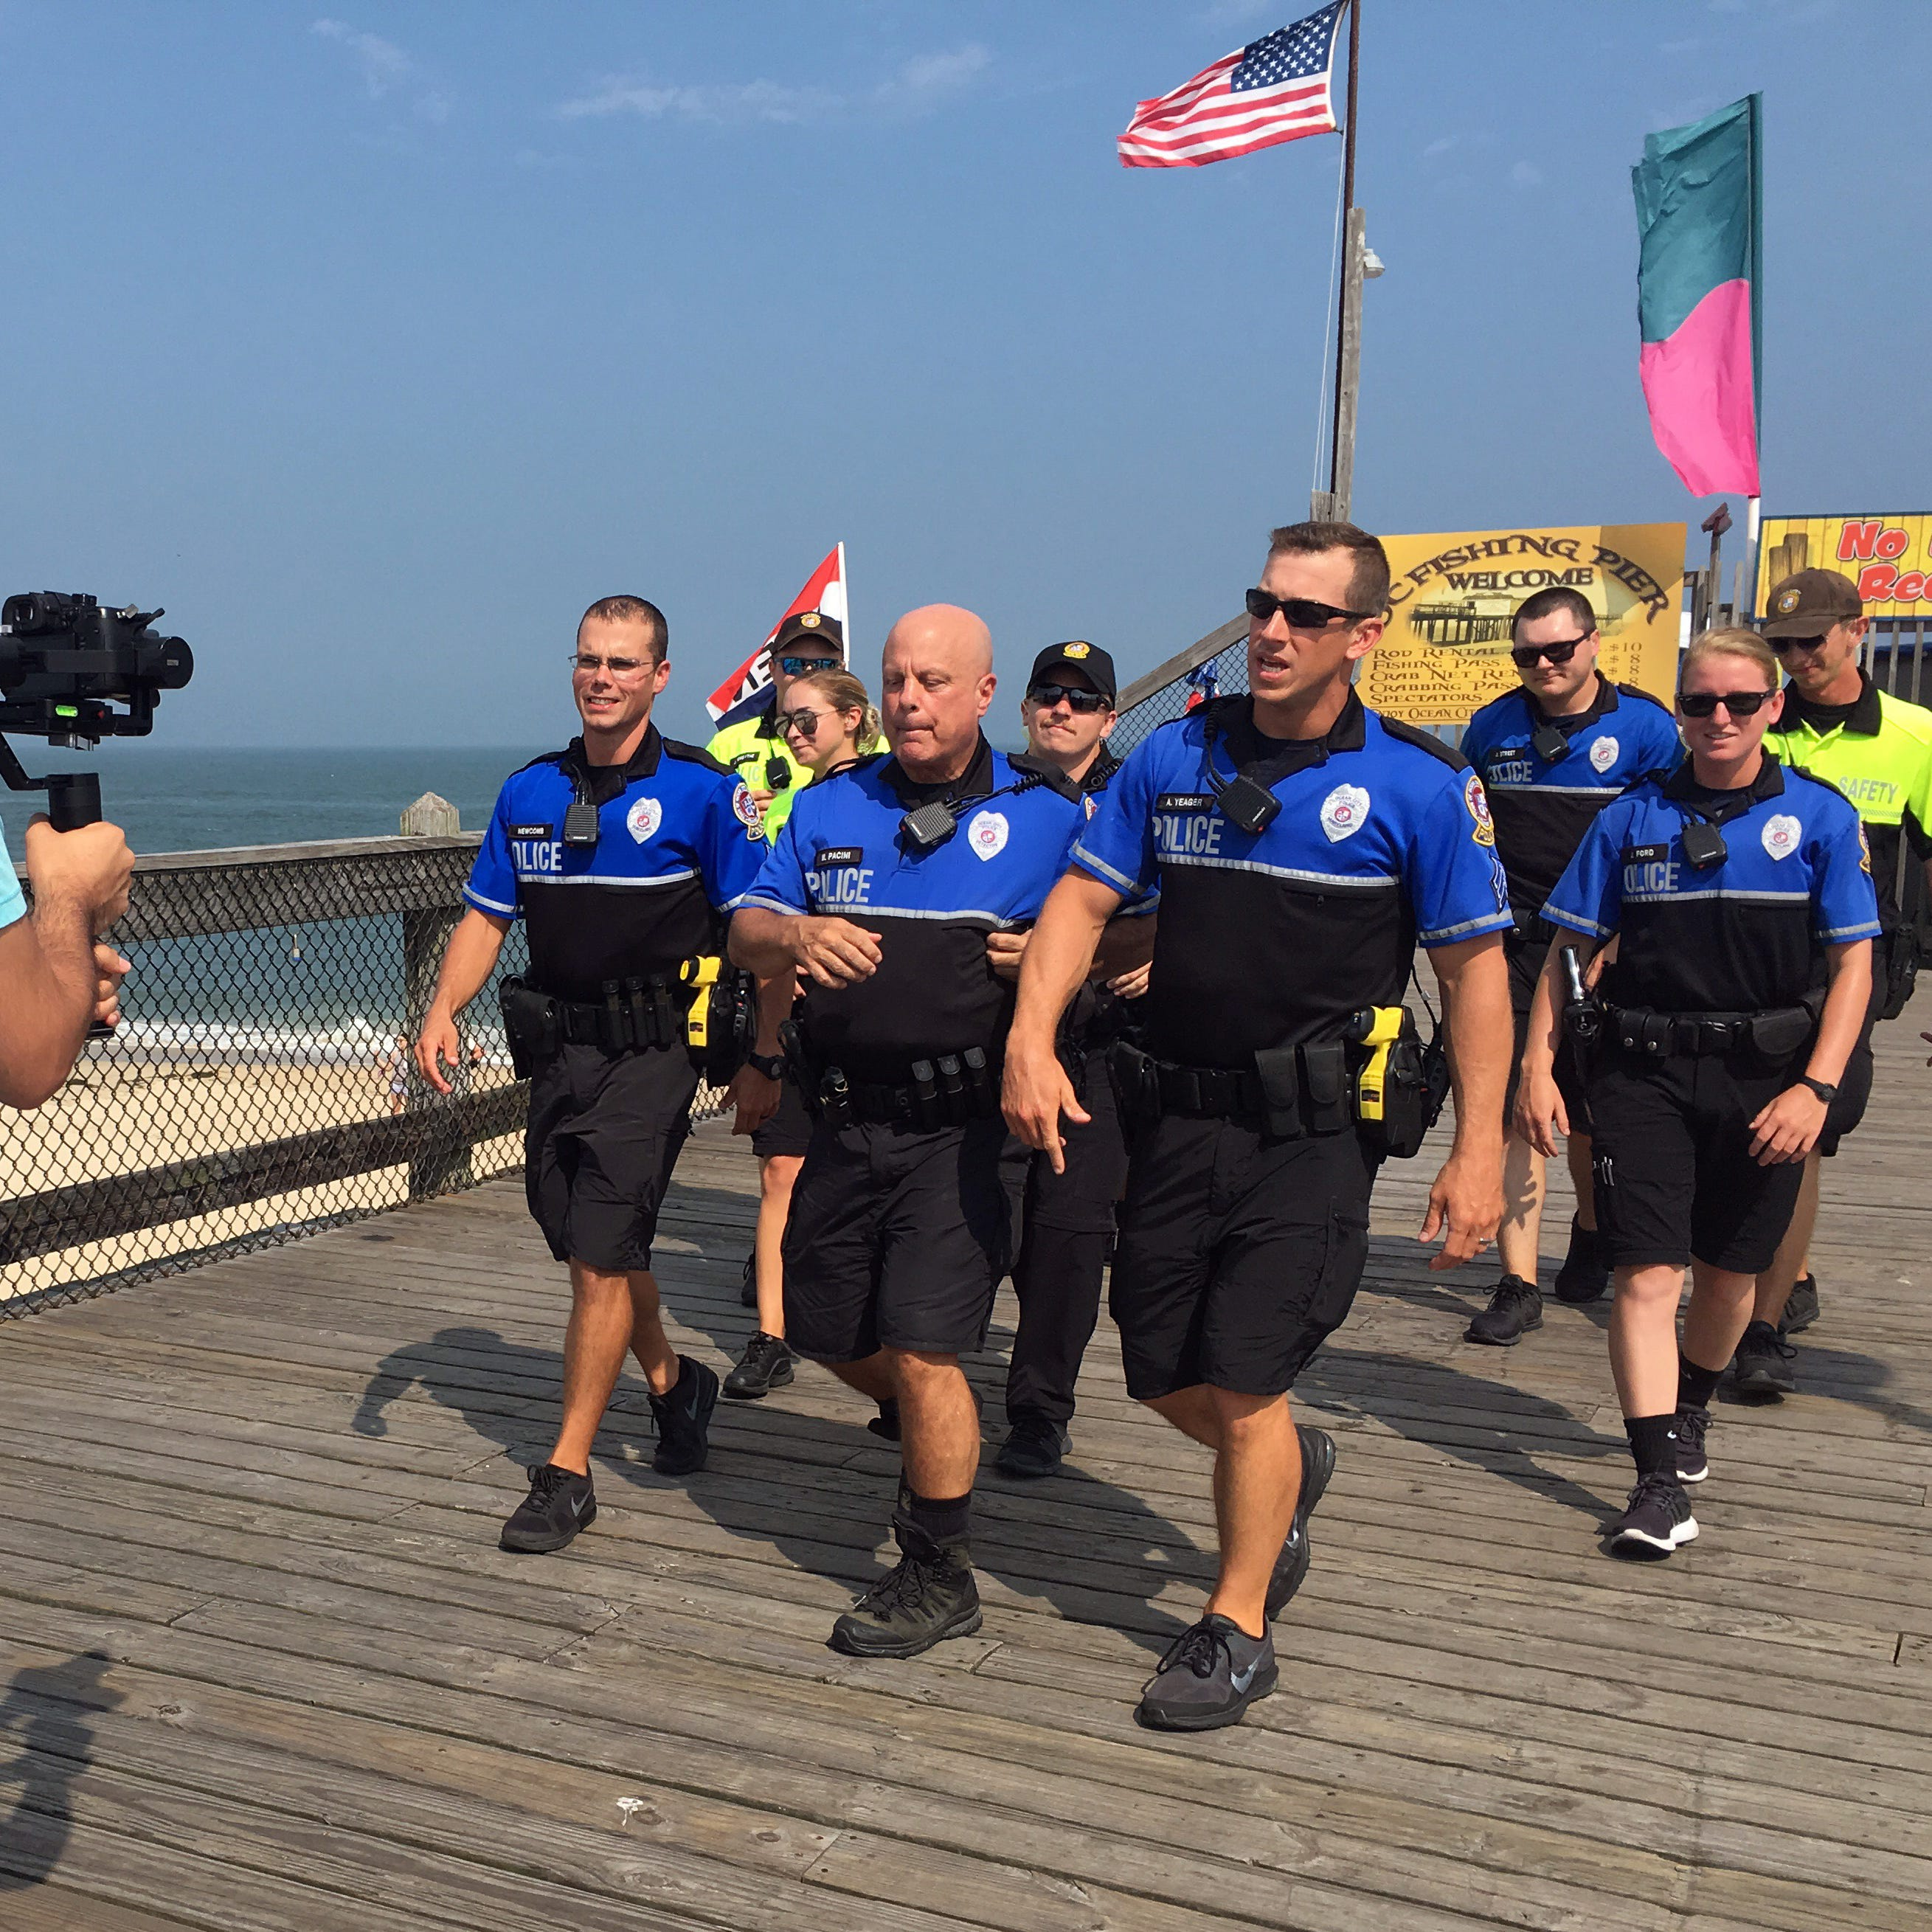 Ocean City police shows off resort in lip sync challenge video